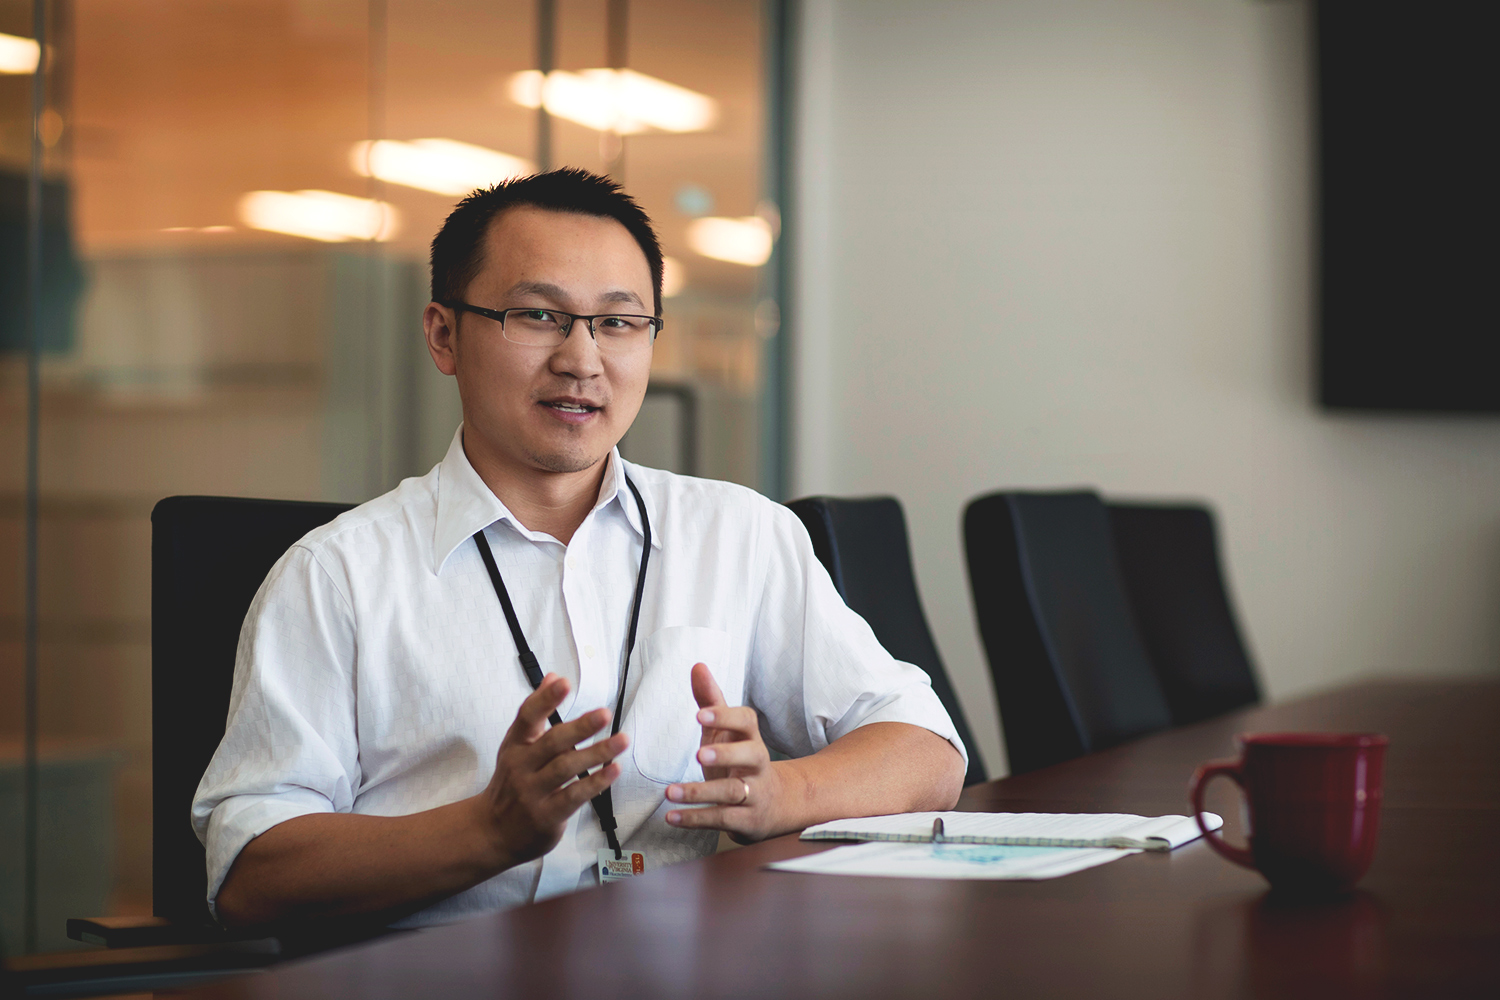 Nengliang (Aaron) Yao led a study that found residents of Appalachia were not sharing in the advances in cancer care that their fellow Americans are experiencing.